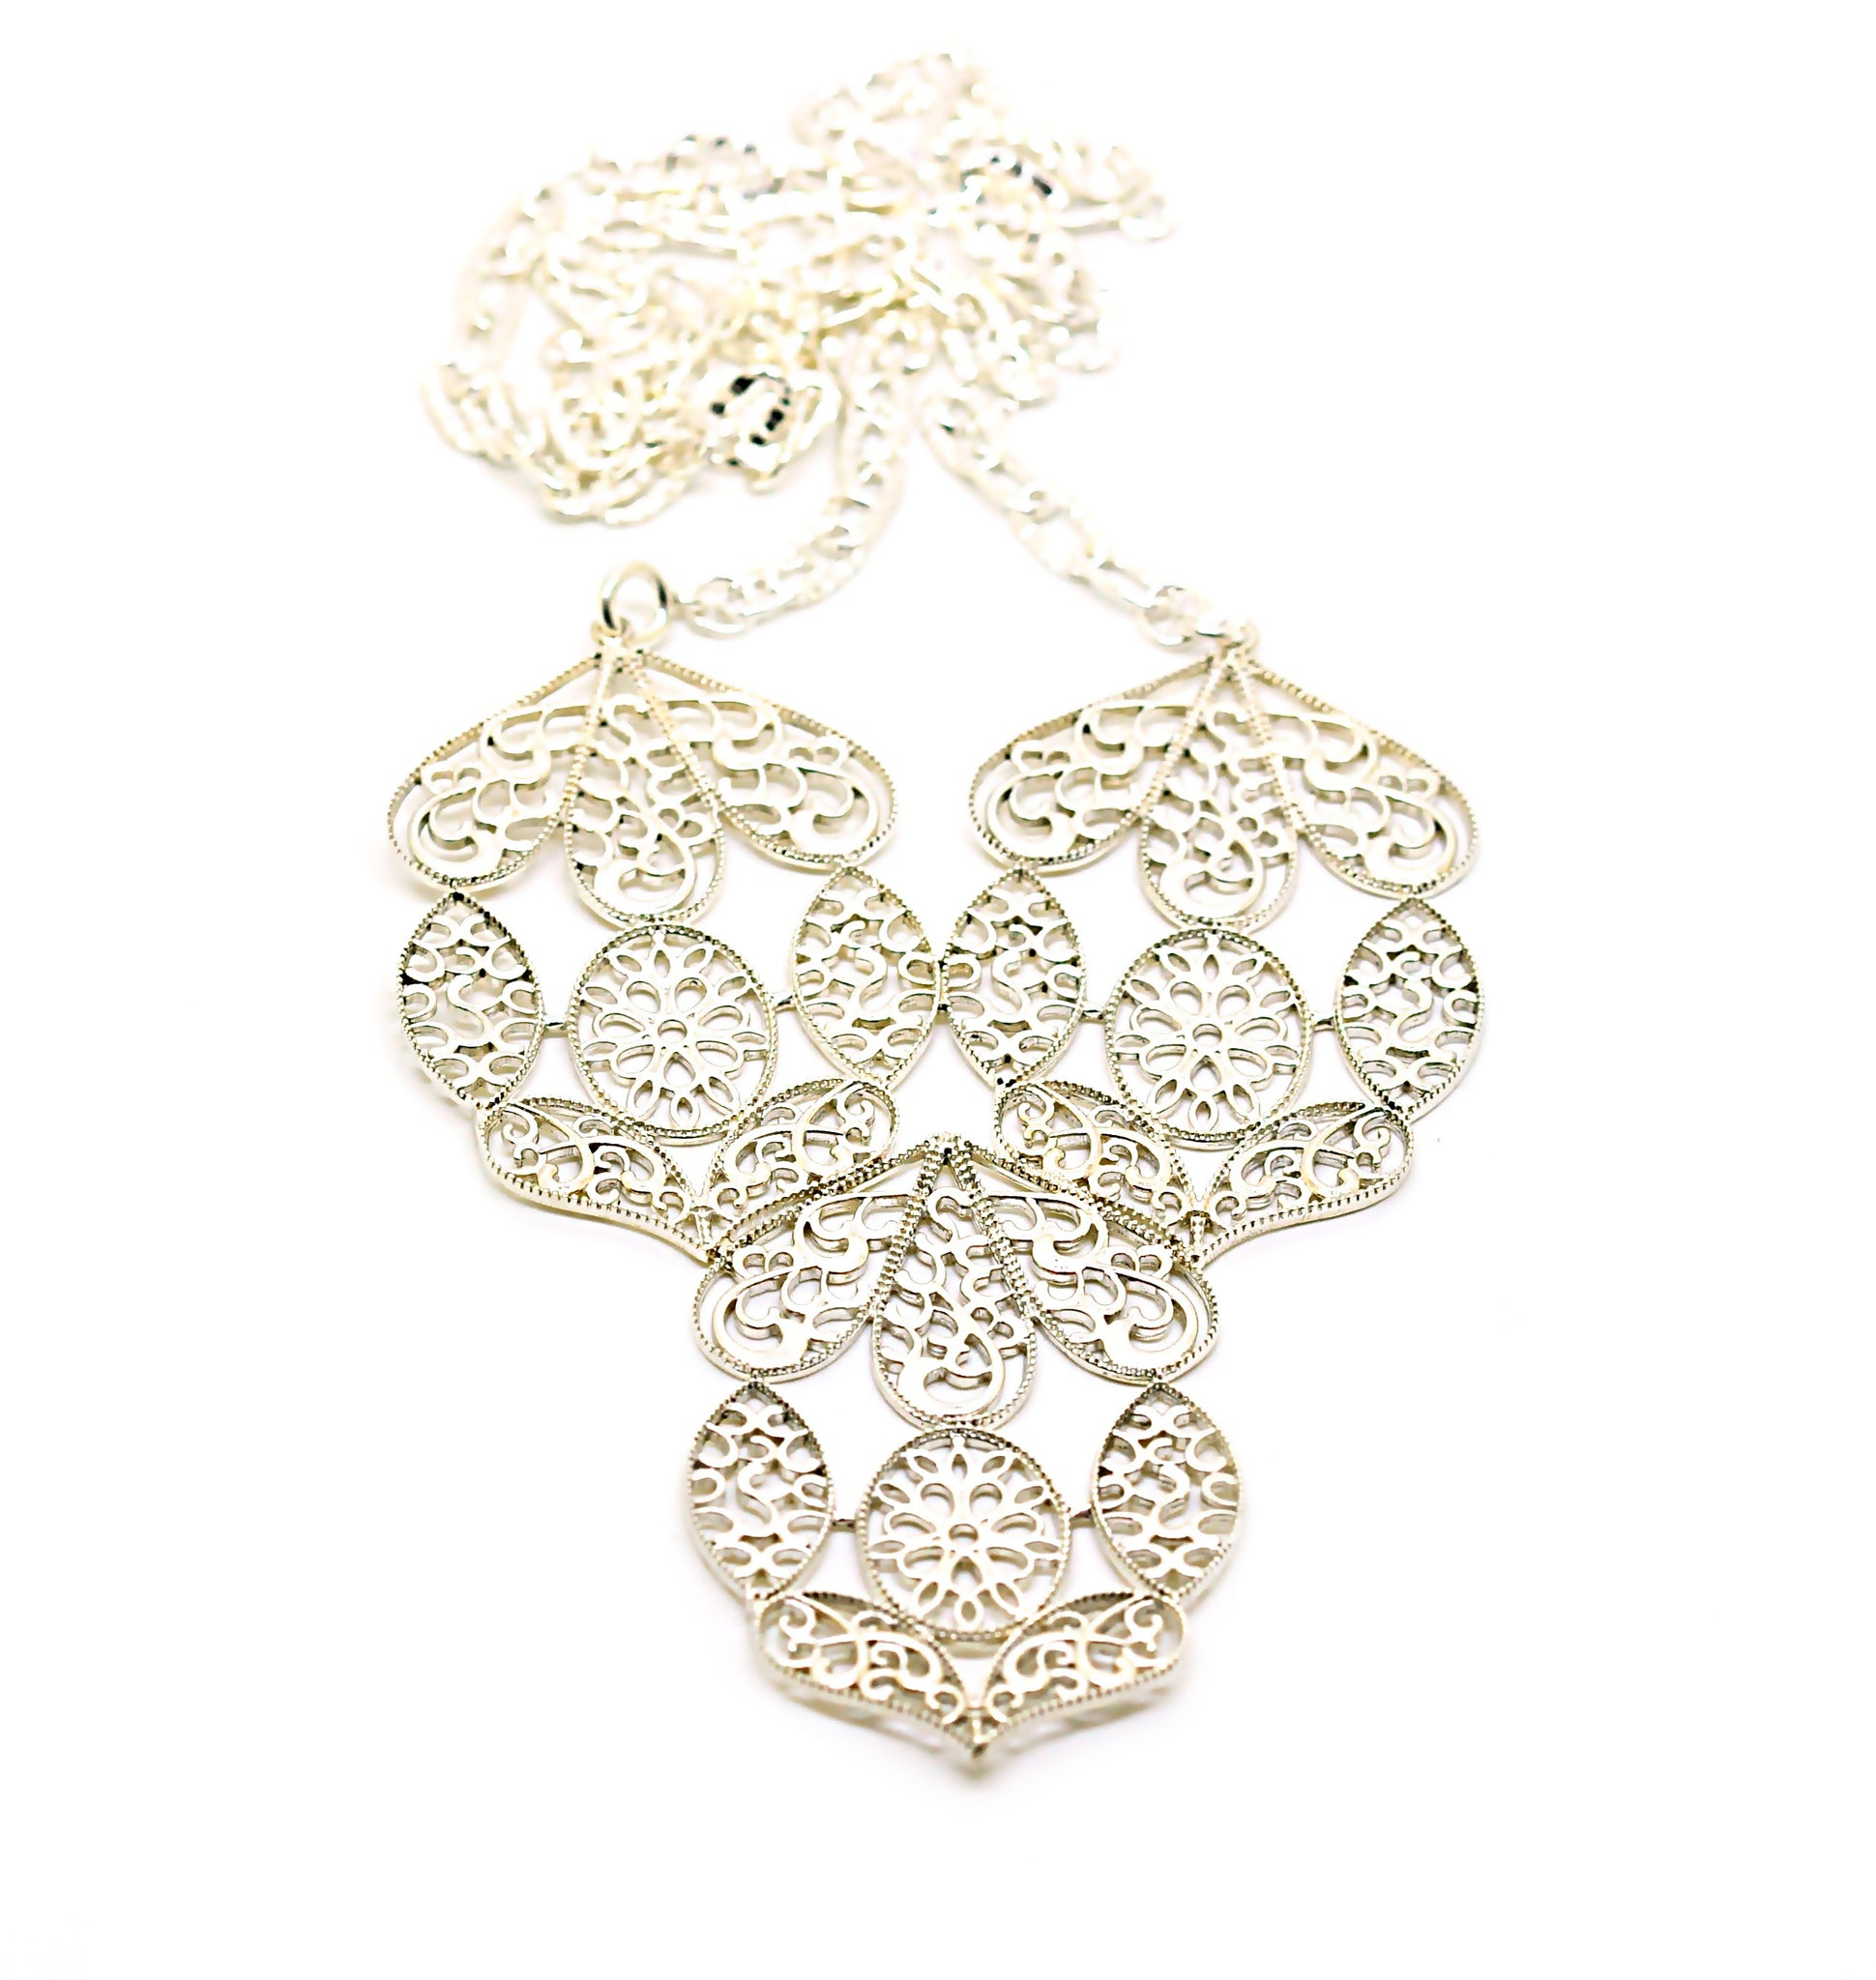 SOLD - NEW Large Filigree necklace